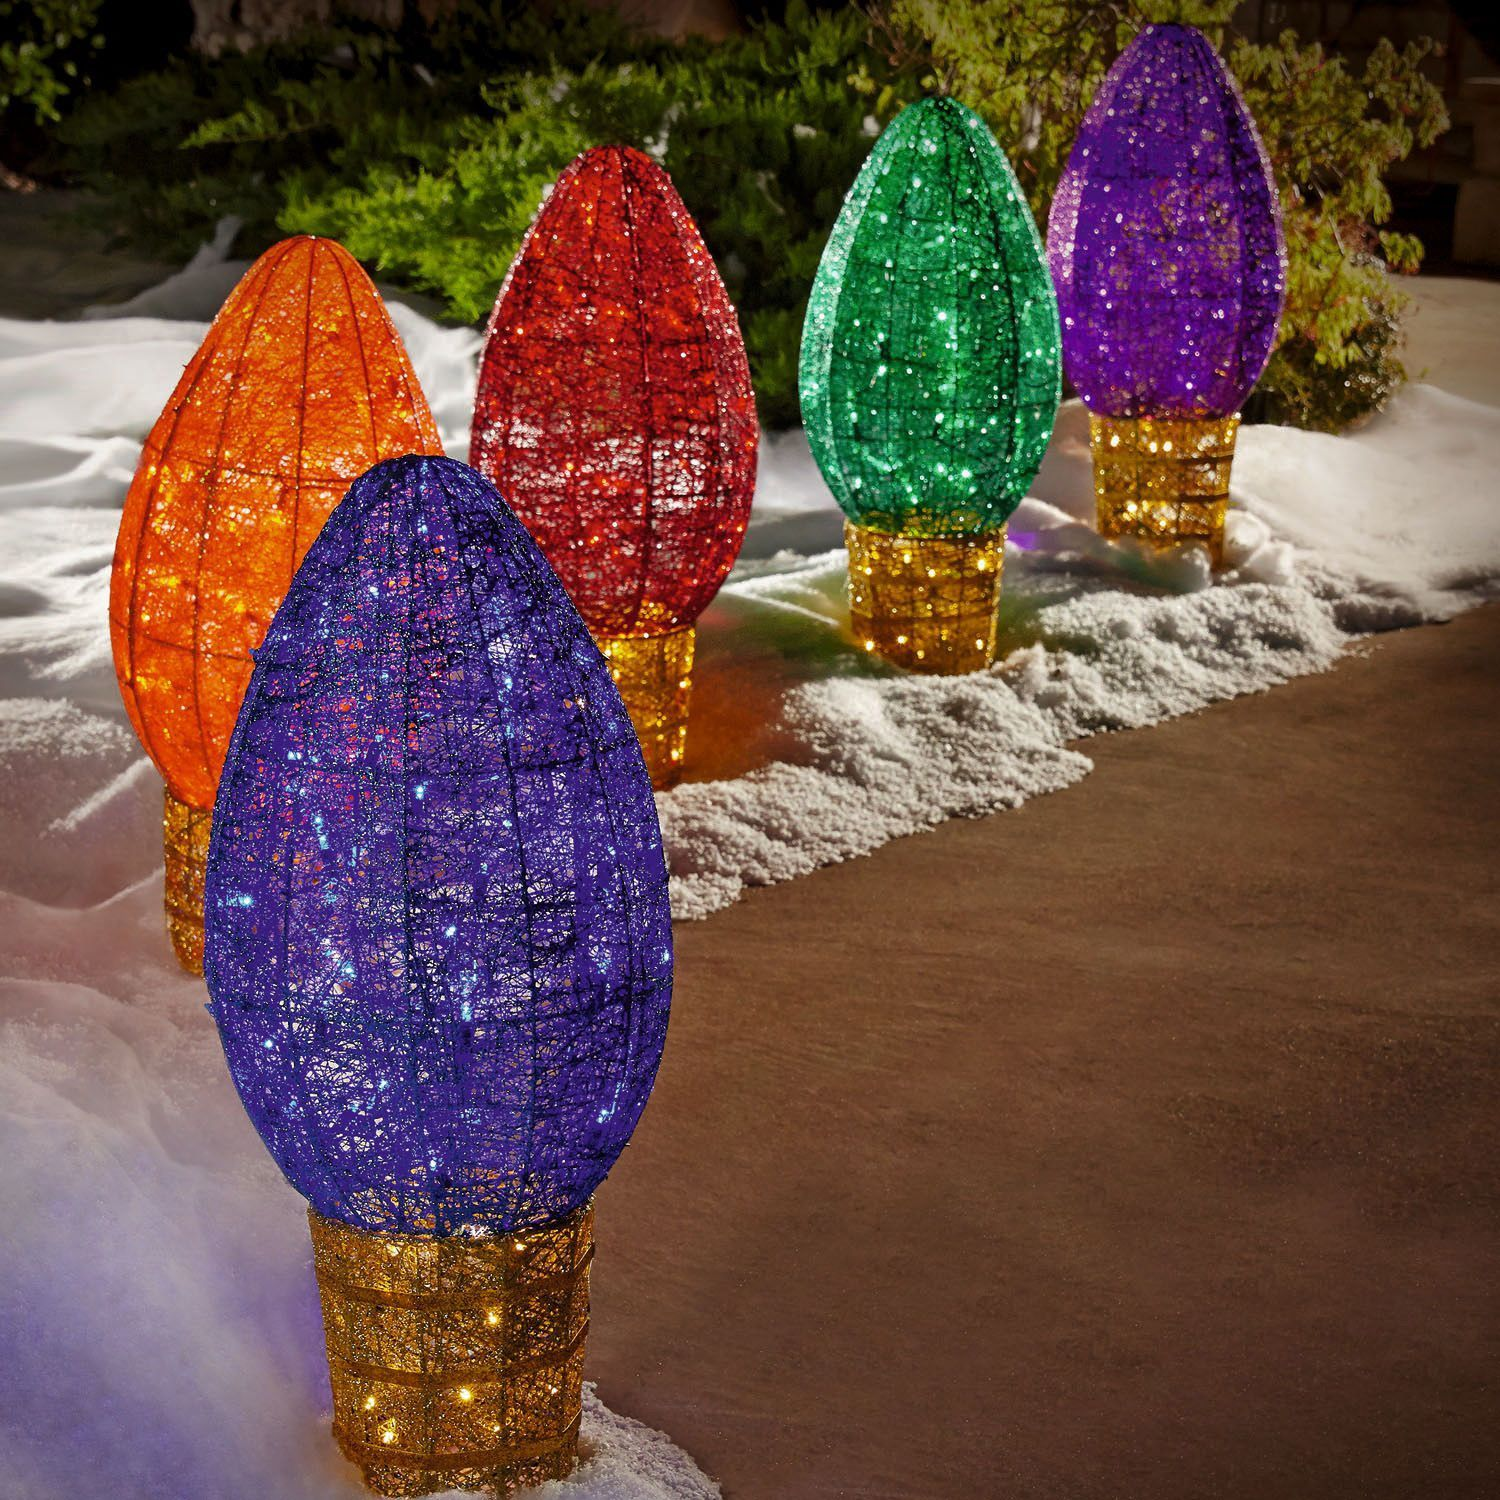 jumbo c9 outdoor light sculptures set of 5 sams club